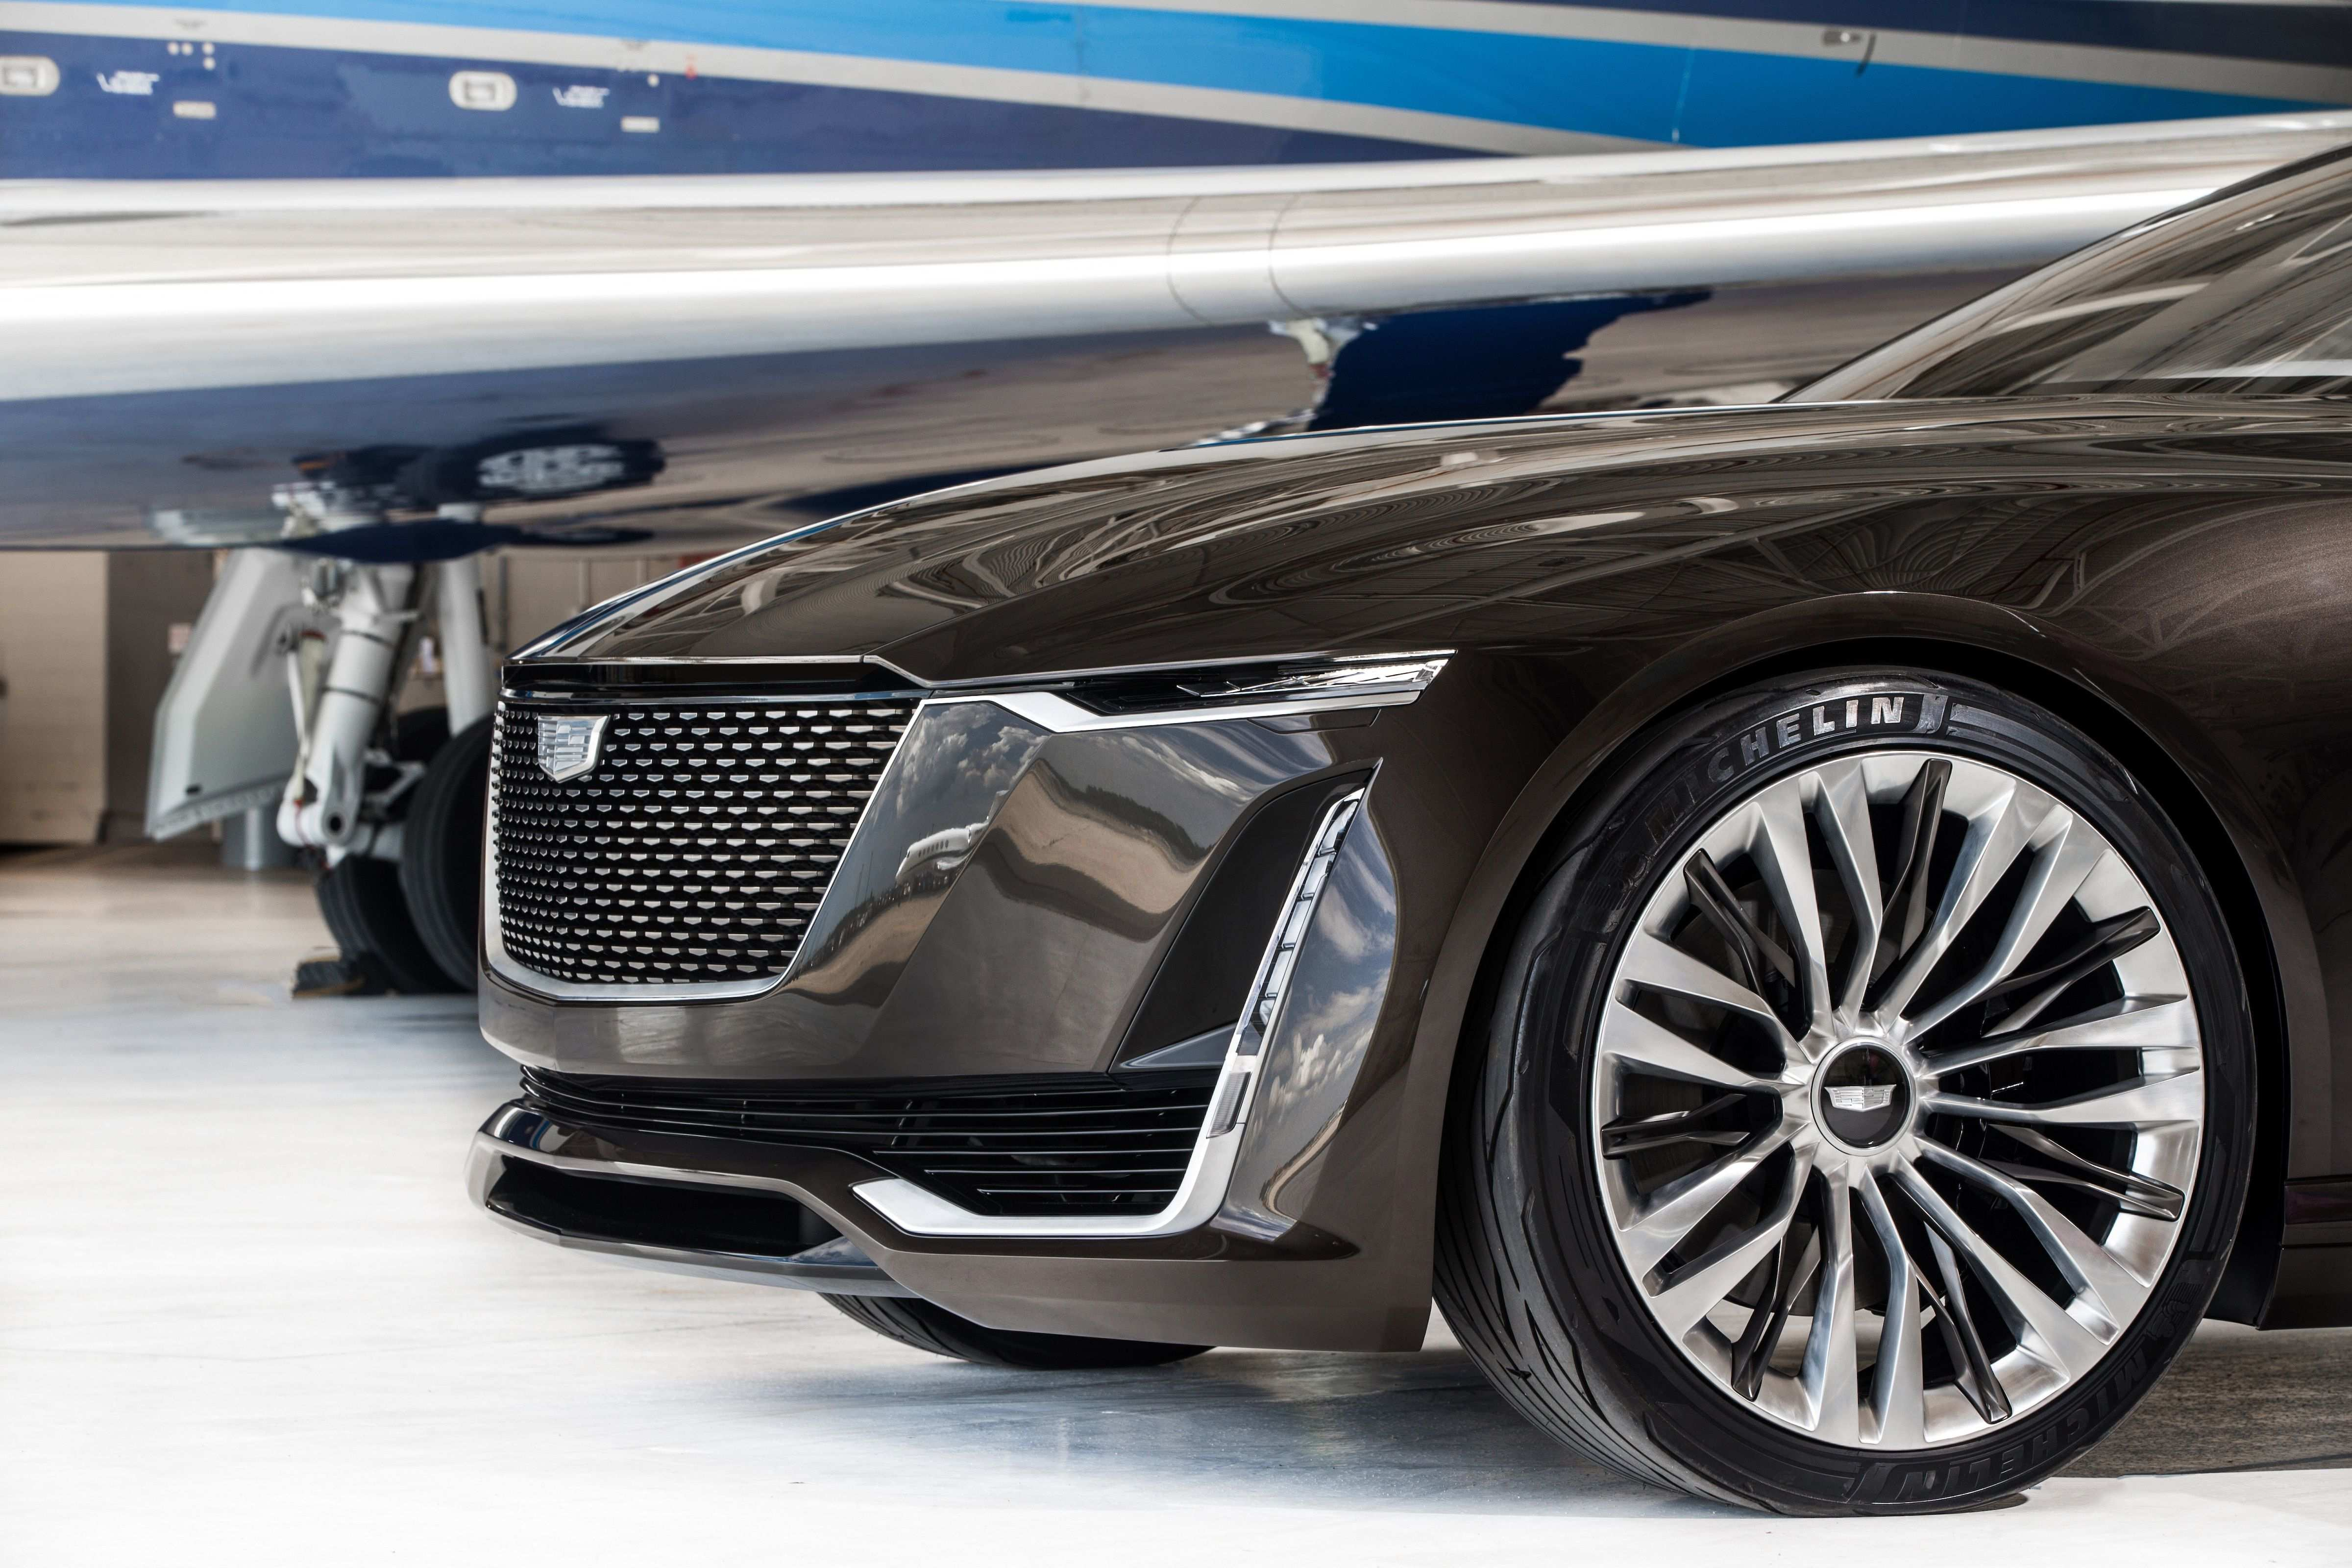 63 All New 2020 Cadillac Escalade Luxury Suv Redesign And Concept